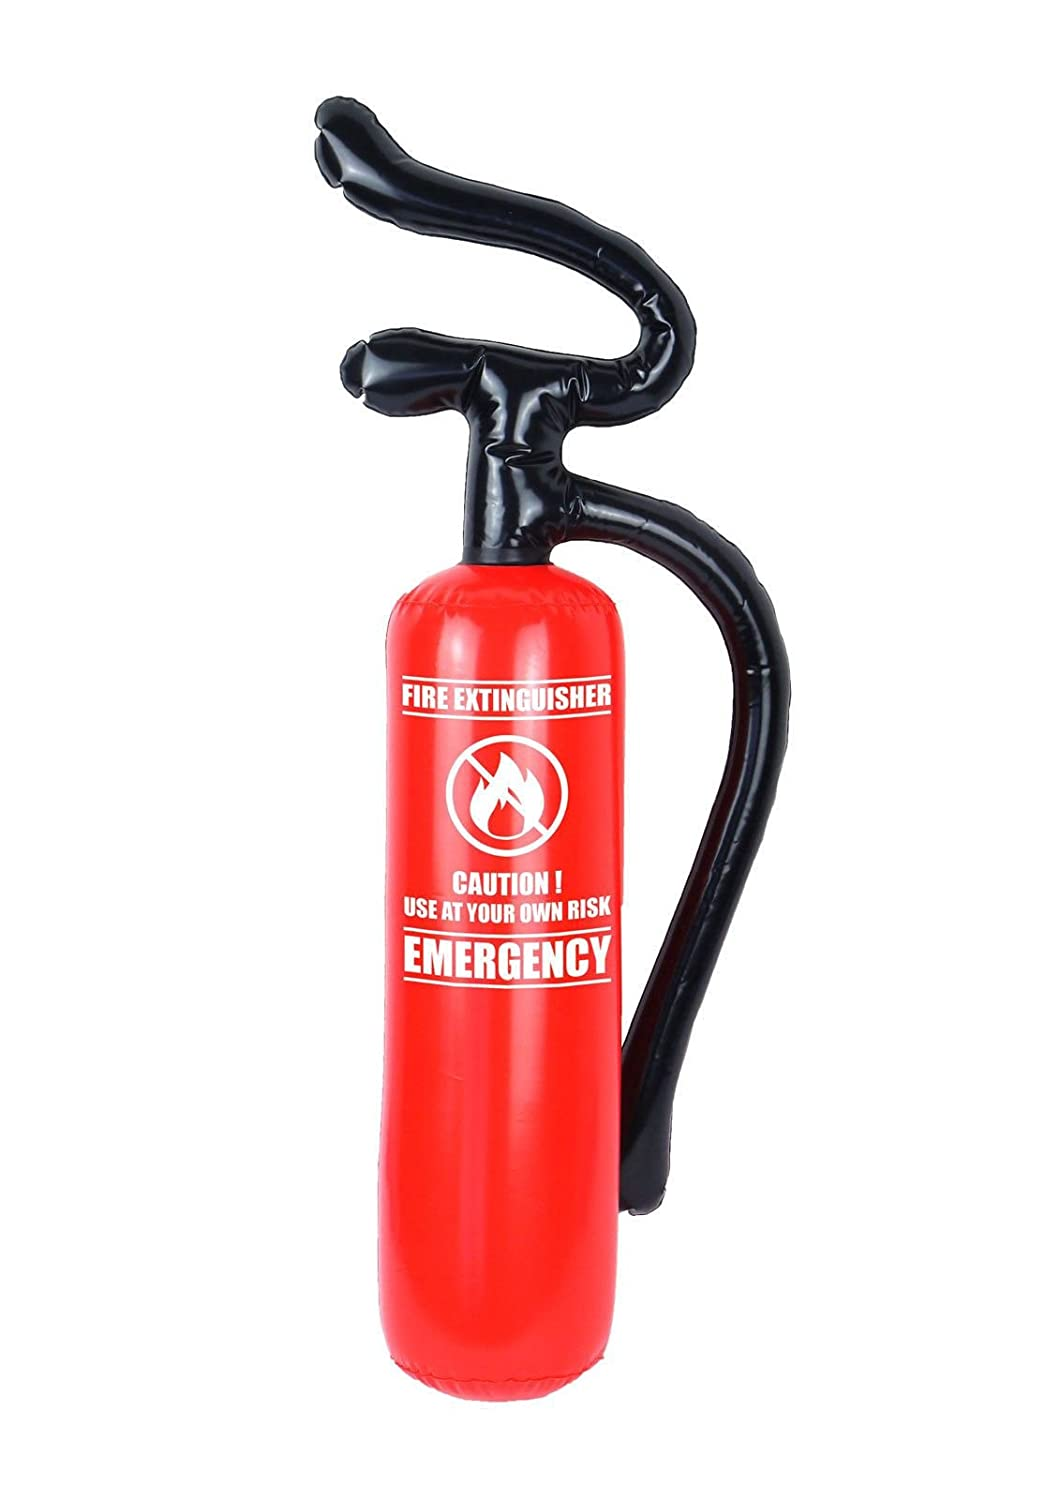 Rimi Hanger Inflatable Blow Up Fire Extinguisher 70cm X 17cm Toy One Size